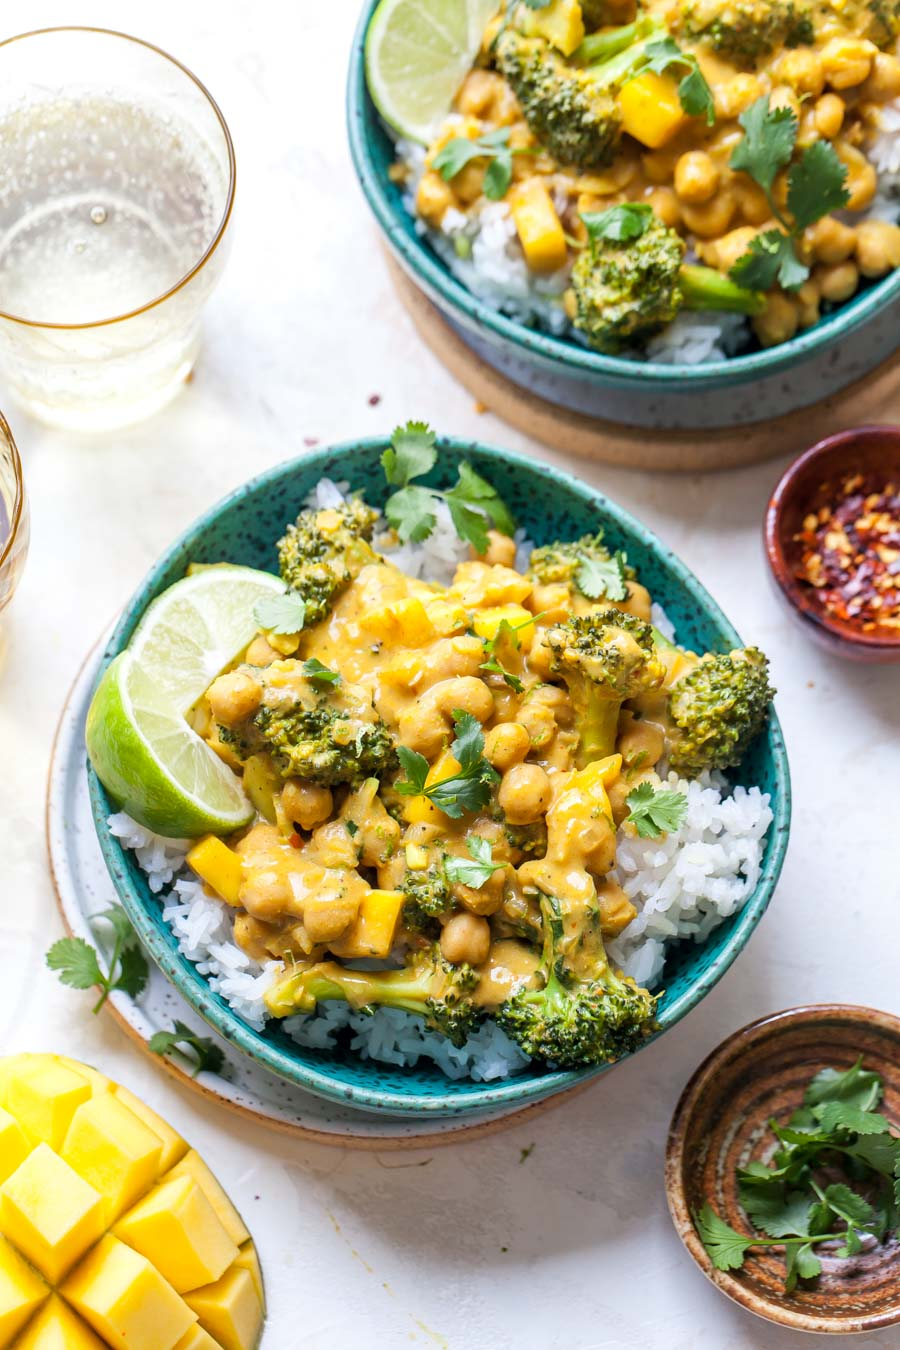 Bowl of broccoli and chickpea curry over rice